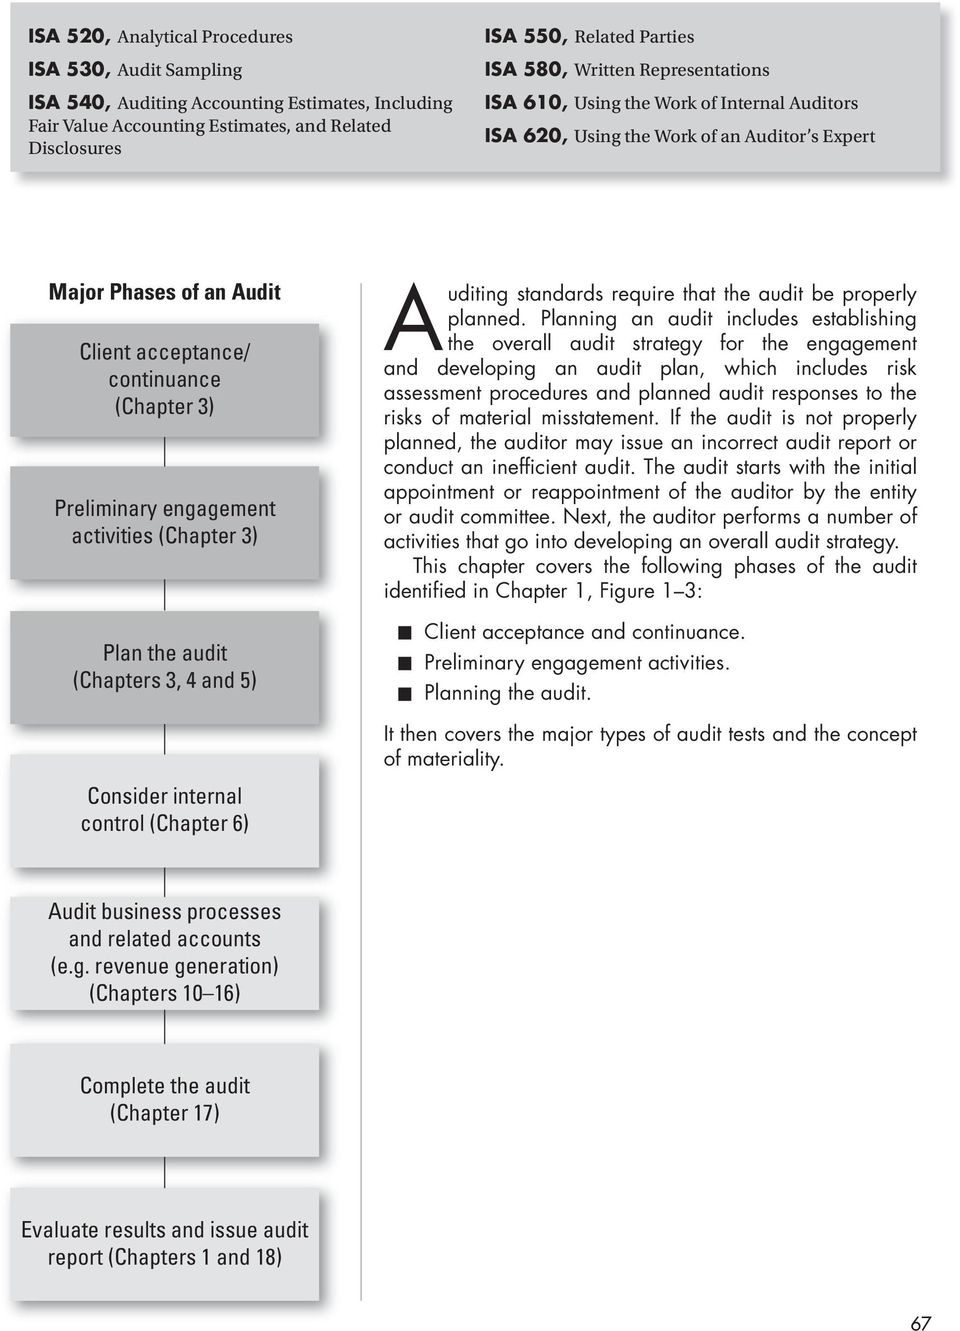 The concept and types of audit 5